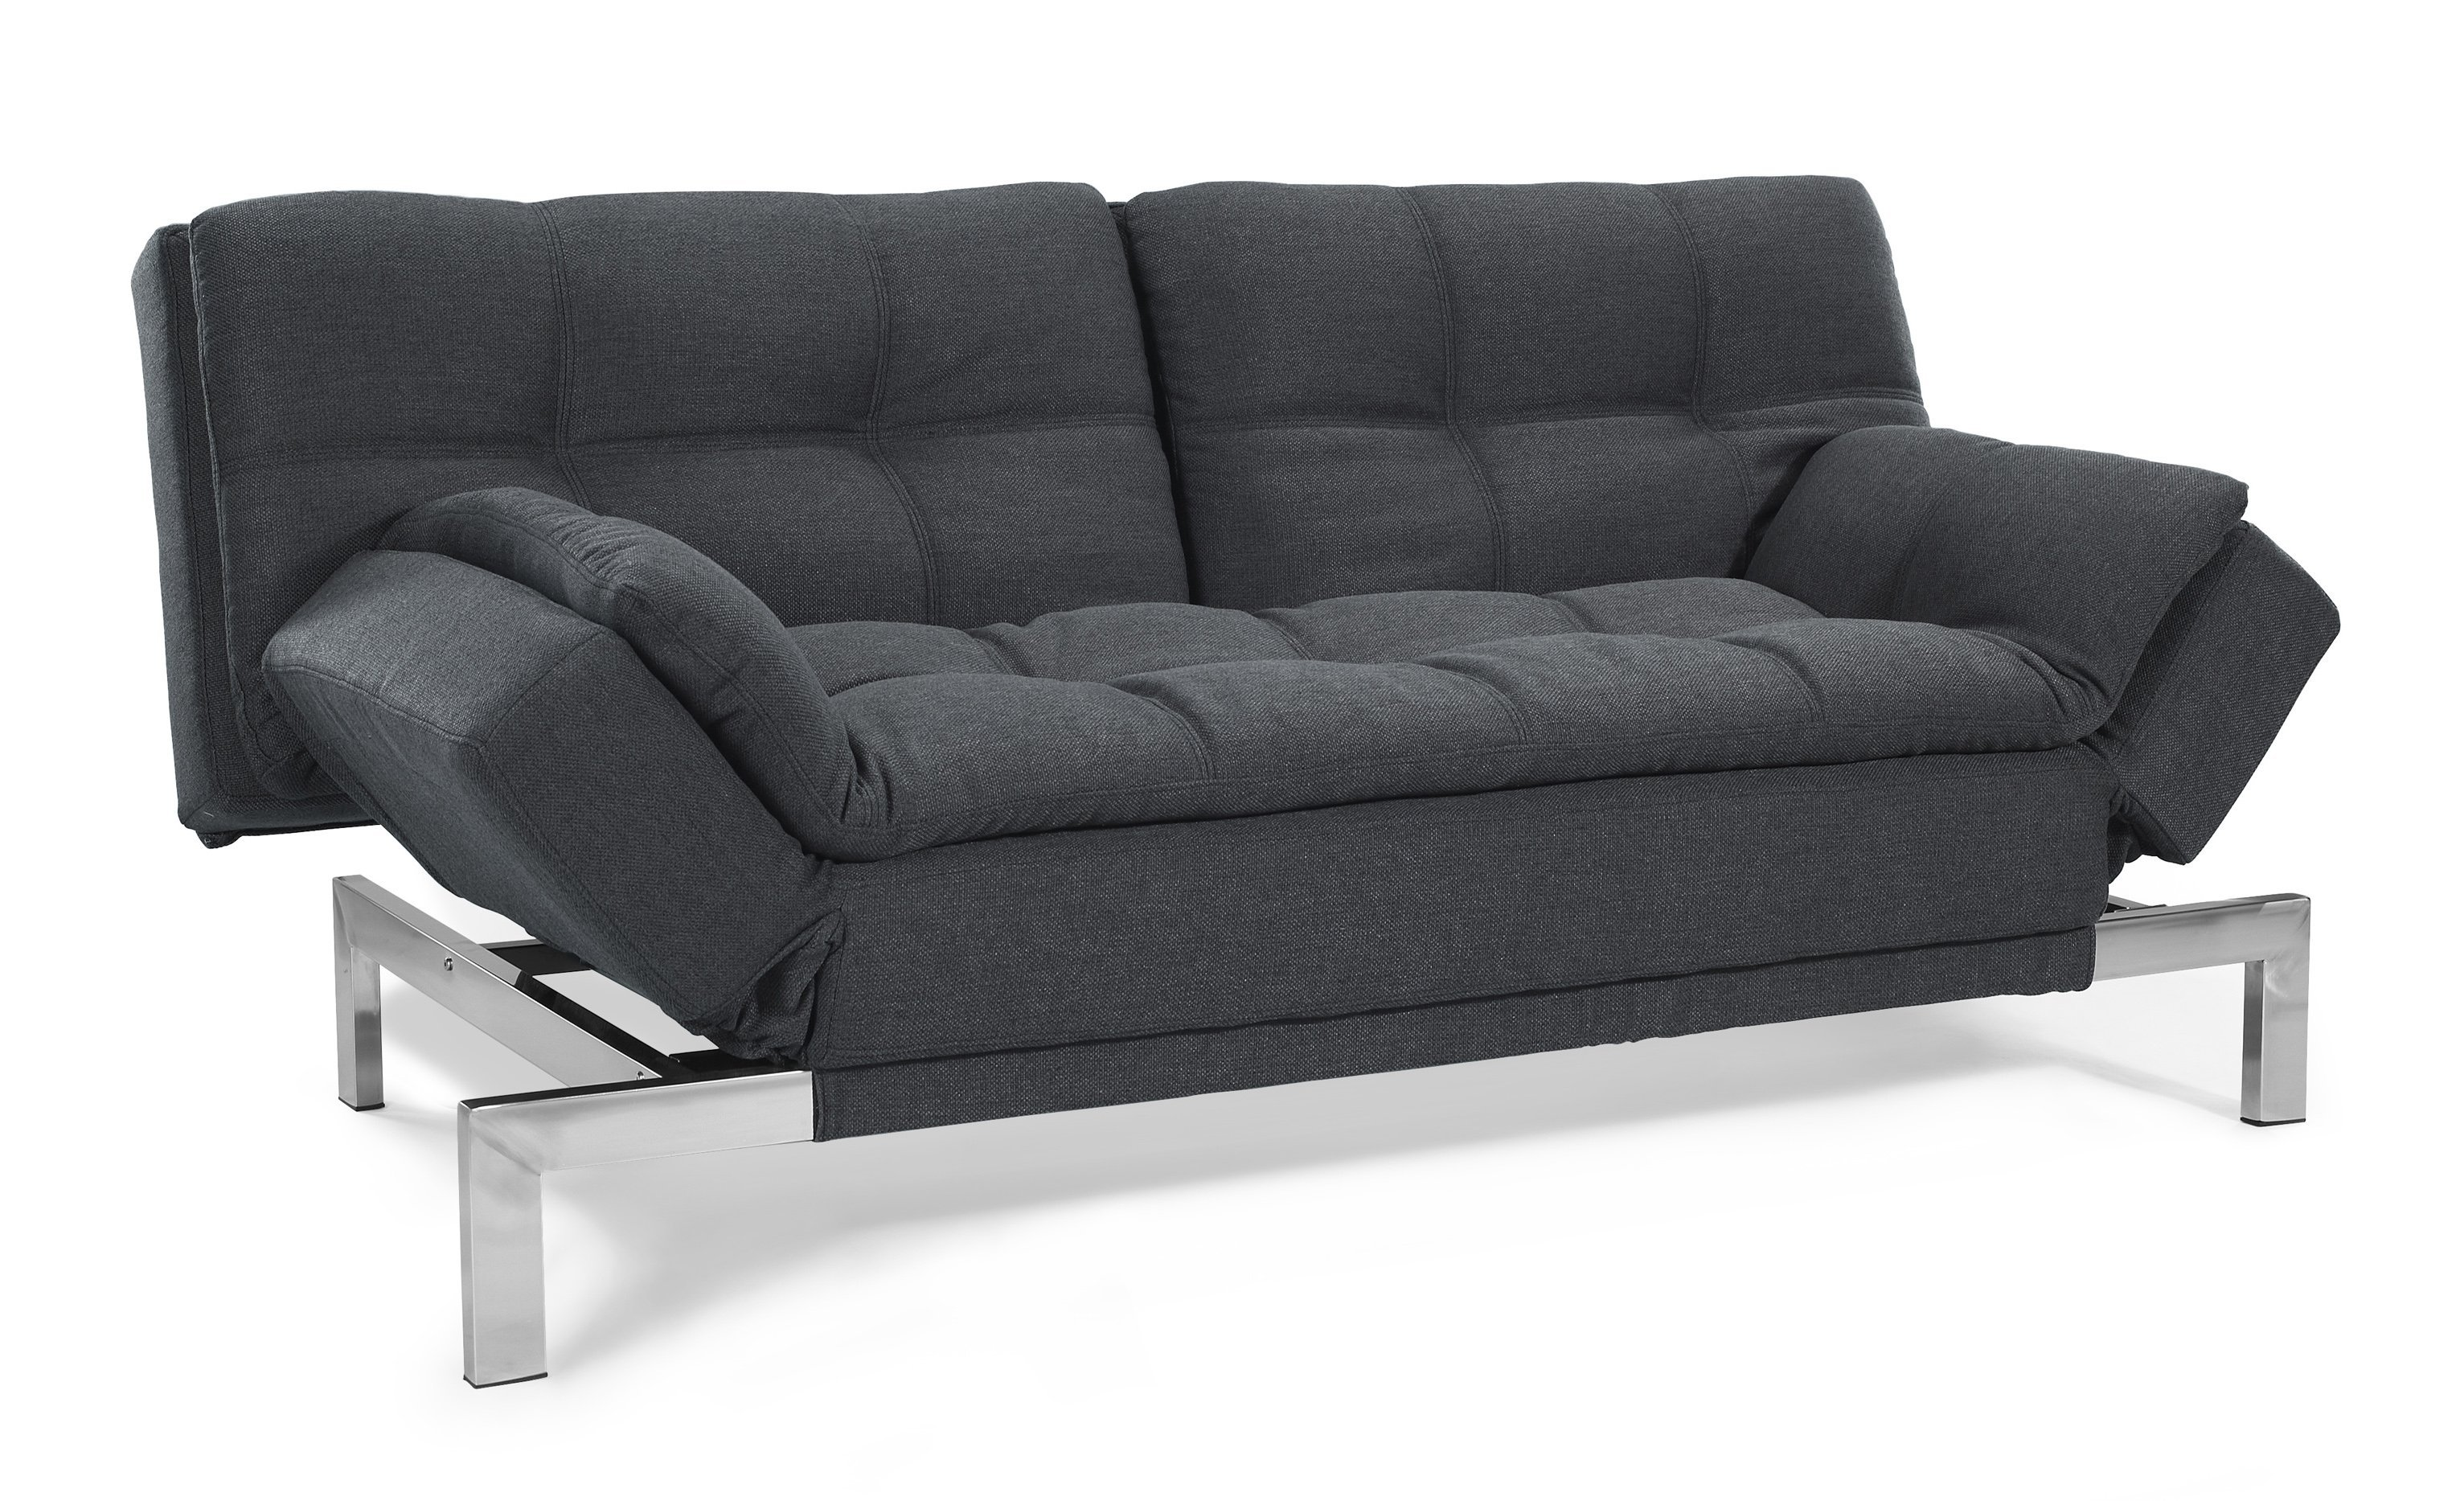 Serta Convertible Sofa Home Furniture Design